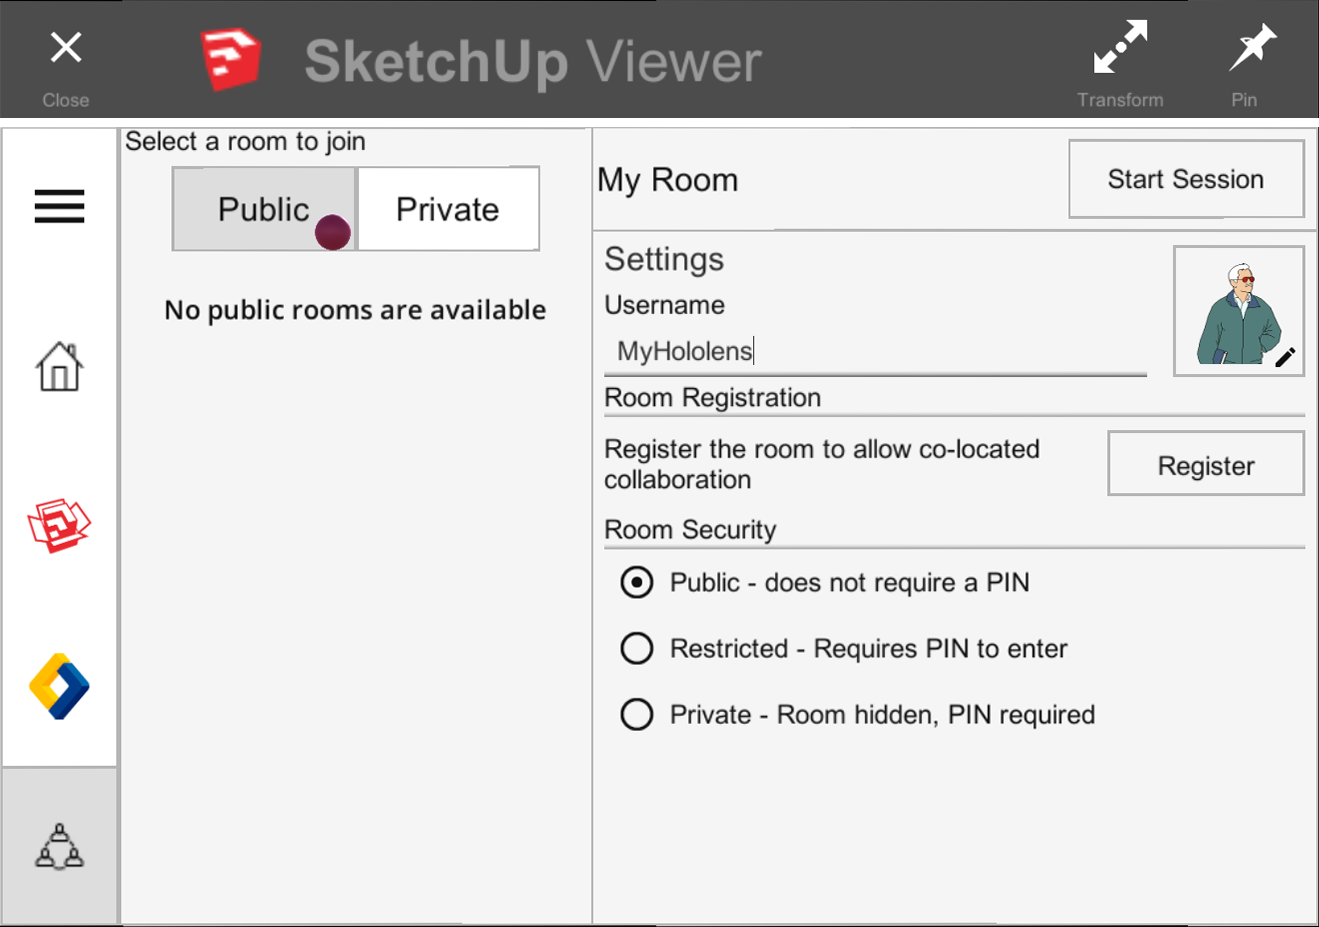 SketchUp Viewer for HoloLens enables you to edit your user name and avatar for a collaboration room